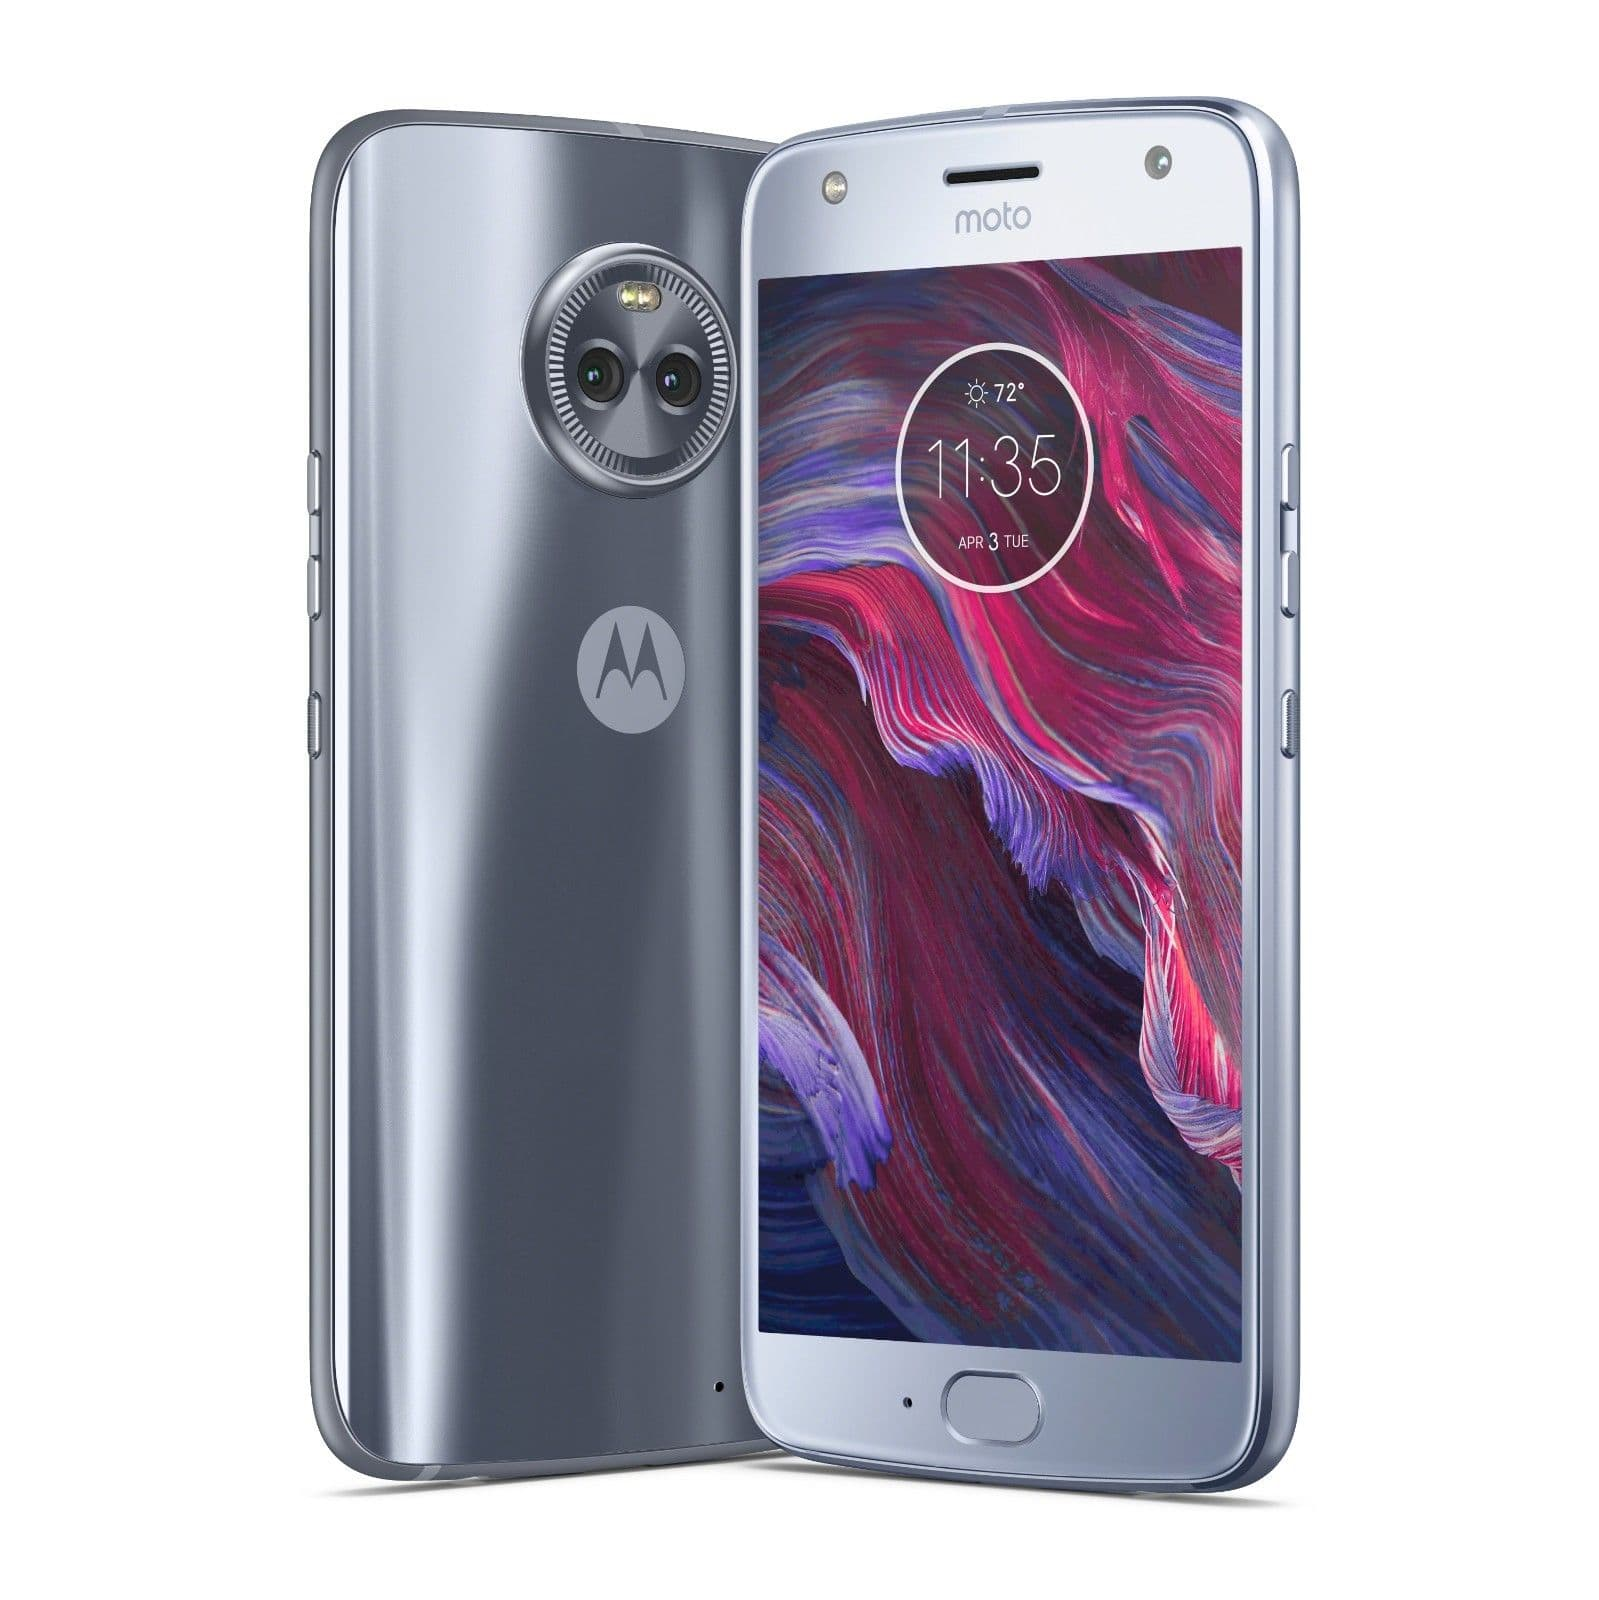 Motorola Moto X4 Android One Edition Factory Unlocked Phone 32/64GB Ebay/Motorola Store $150/$200